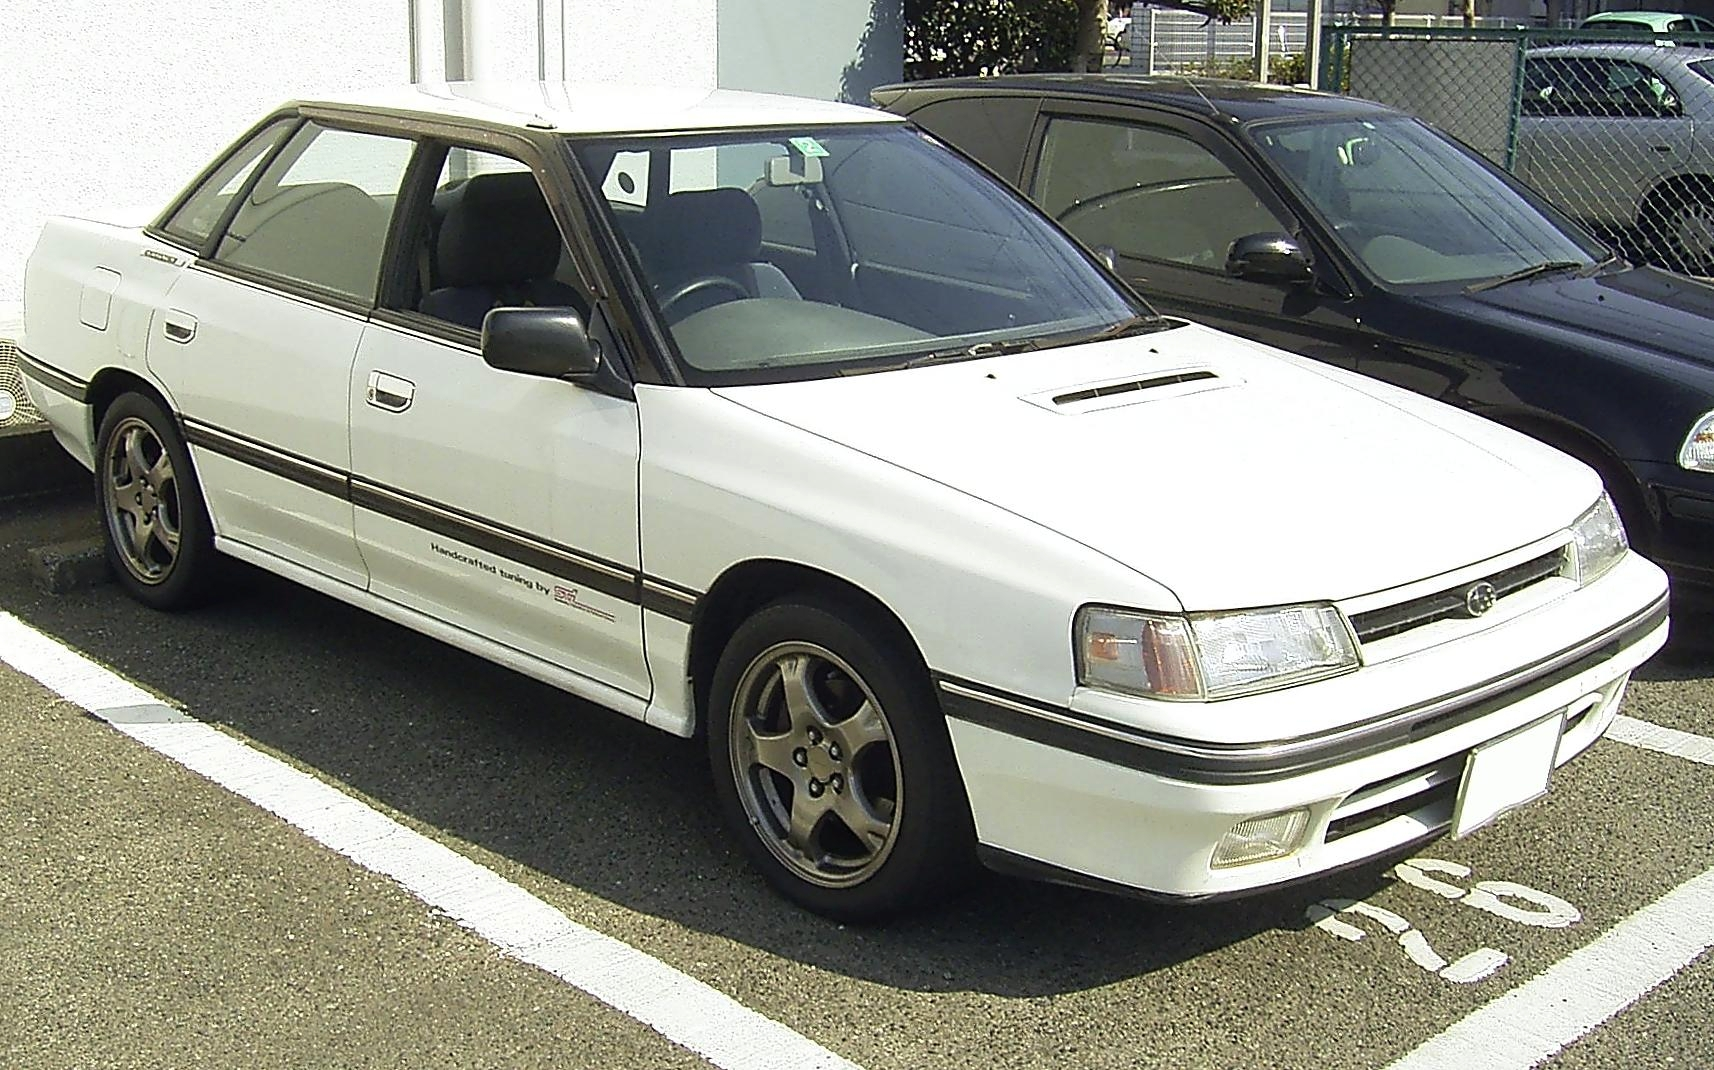 http://upload.wikimedia.org/wikipedia/commons/7/7a/Subaru_legacy_rs-ra_02.jpg